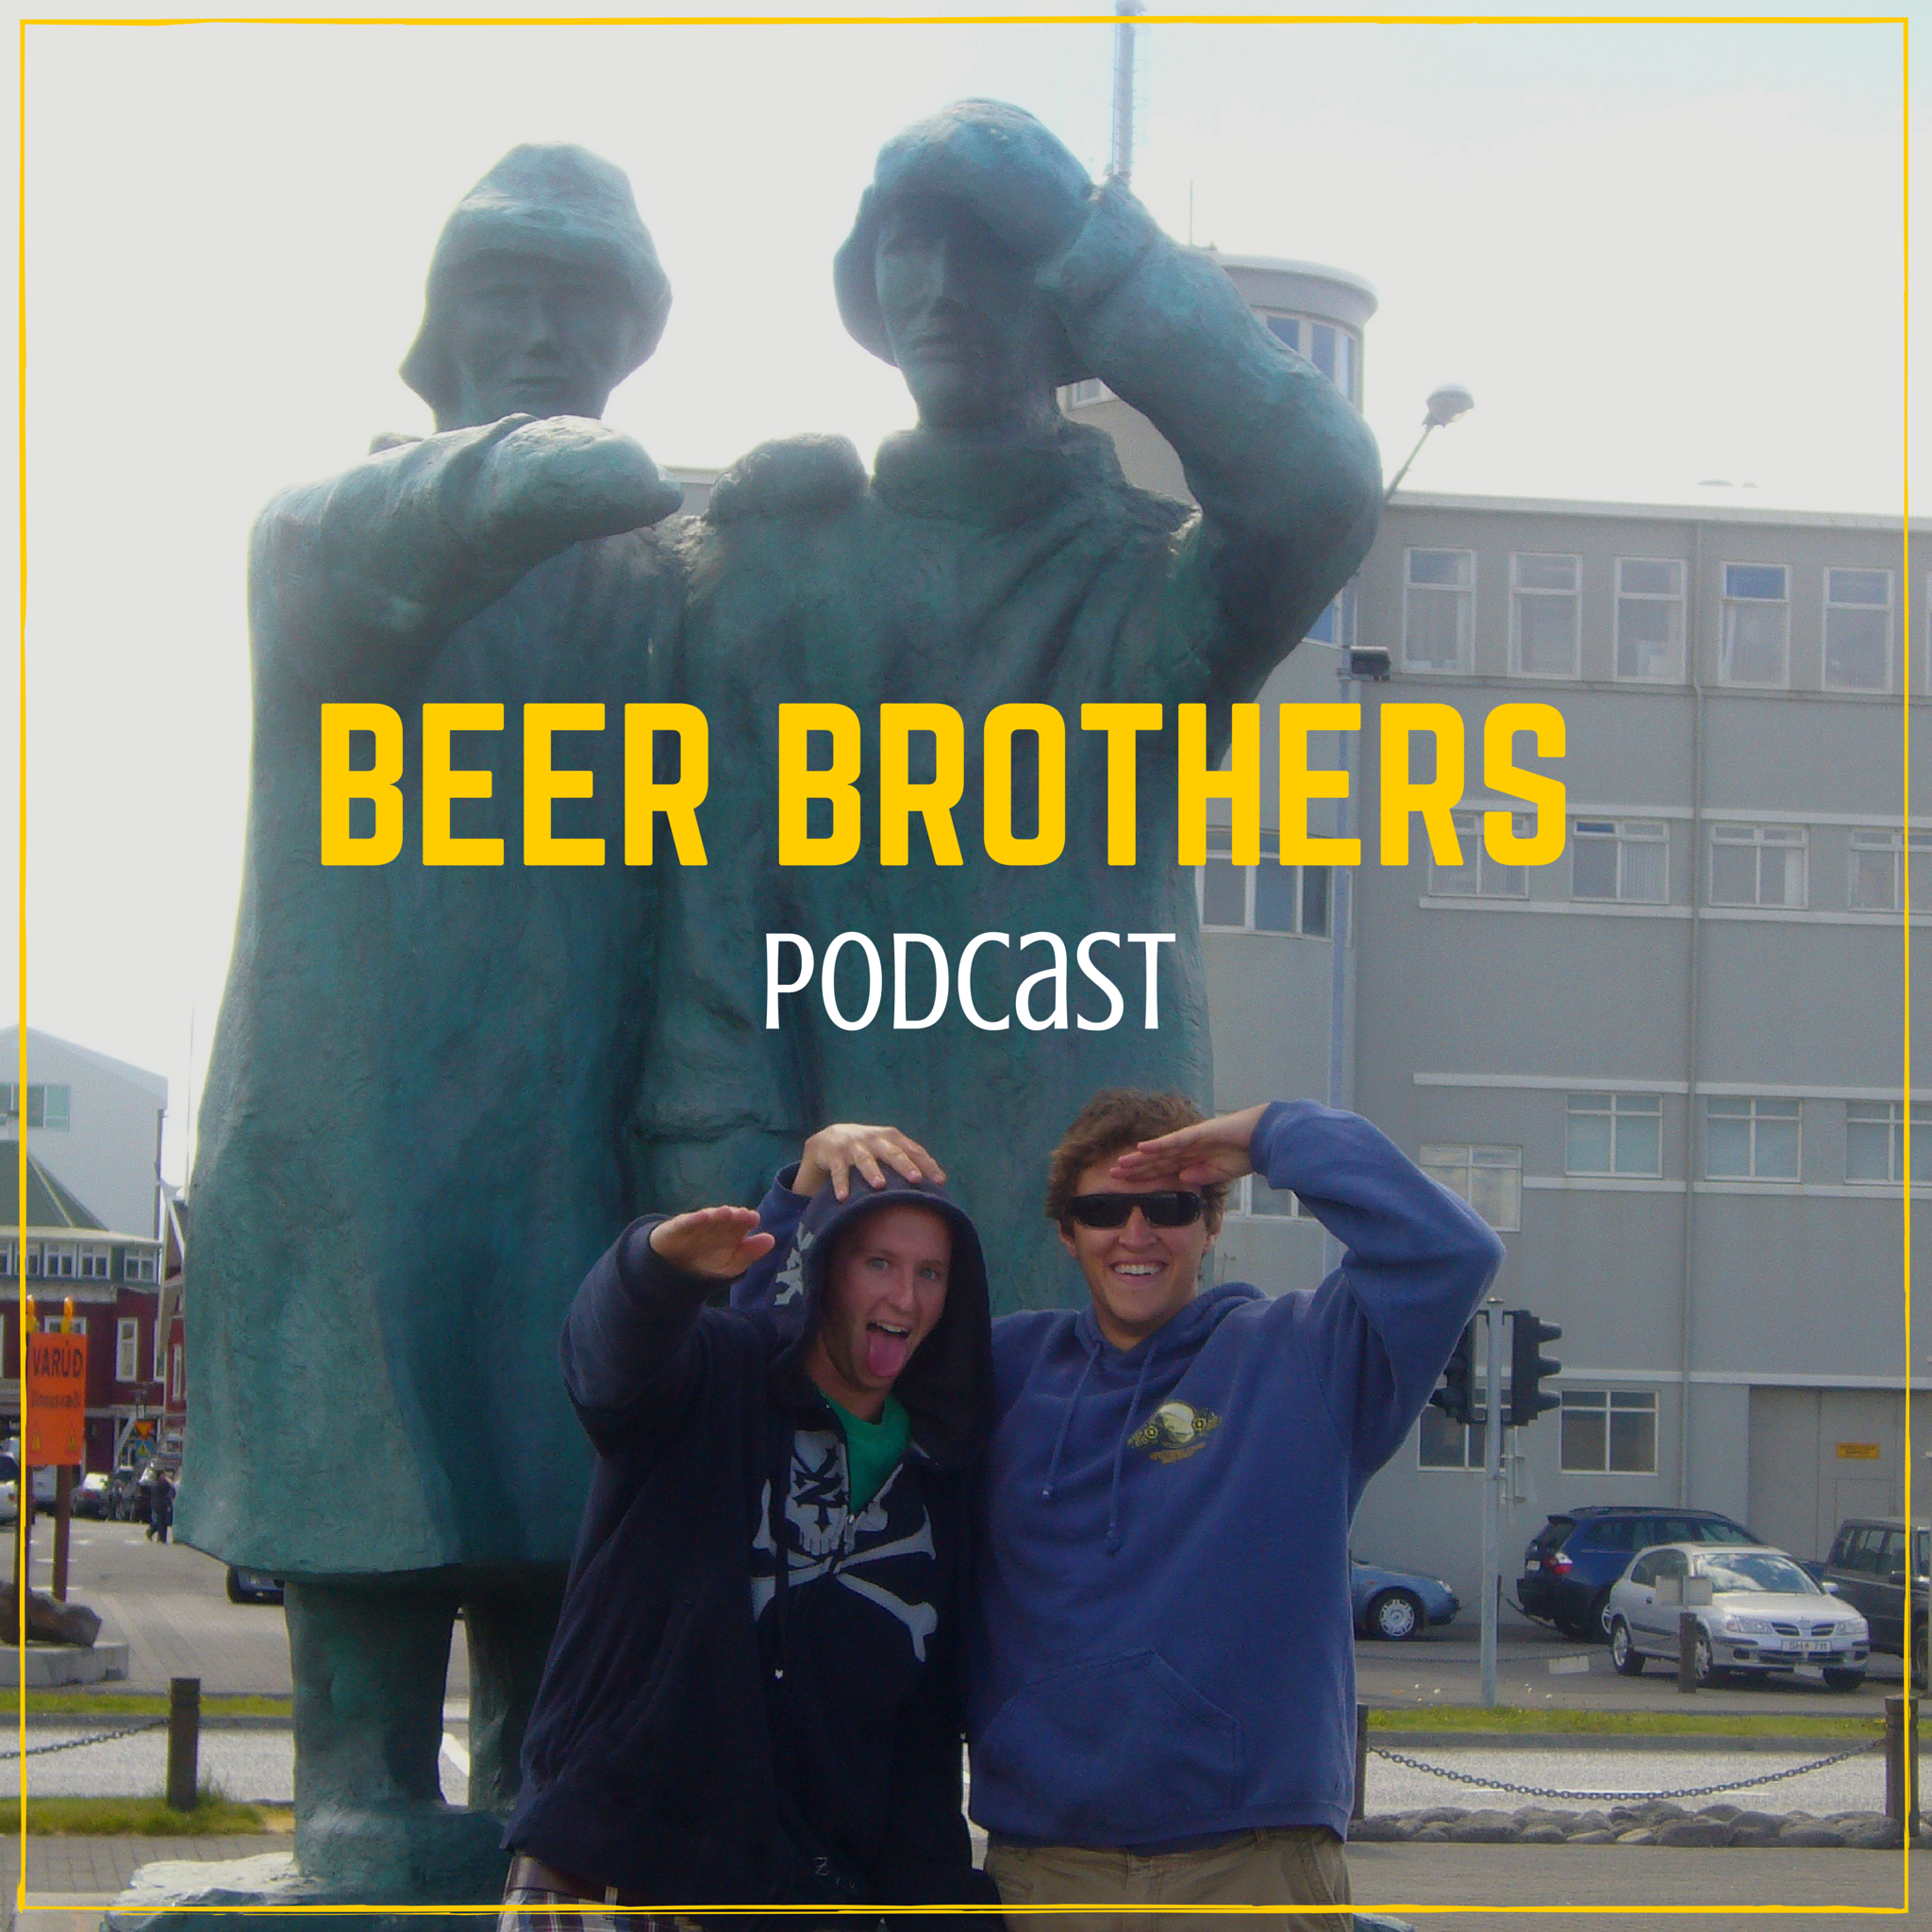 Beer Brothers Podcast